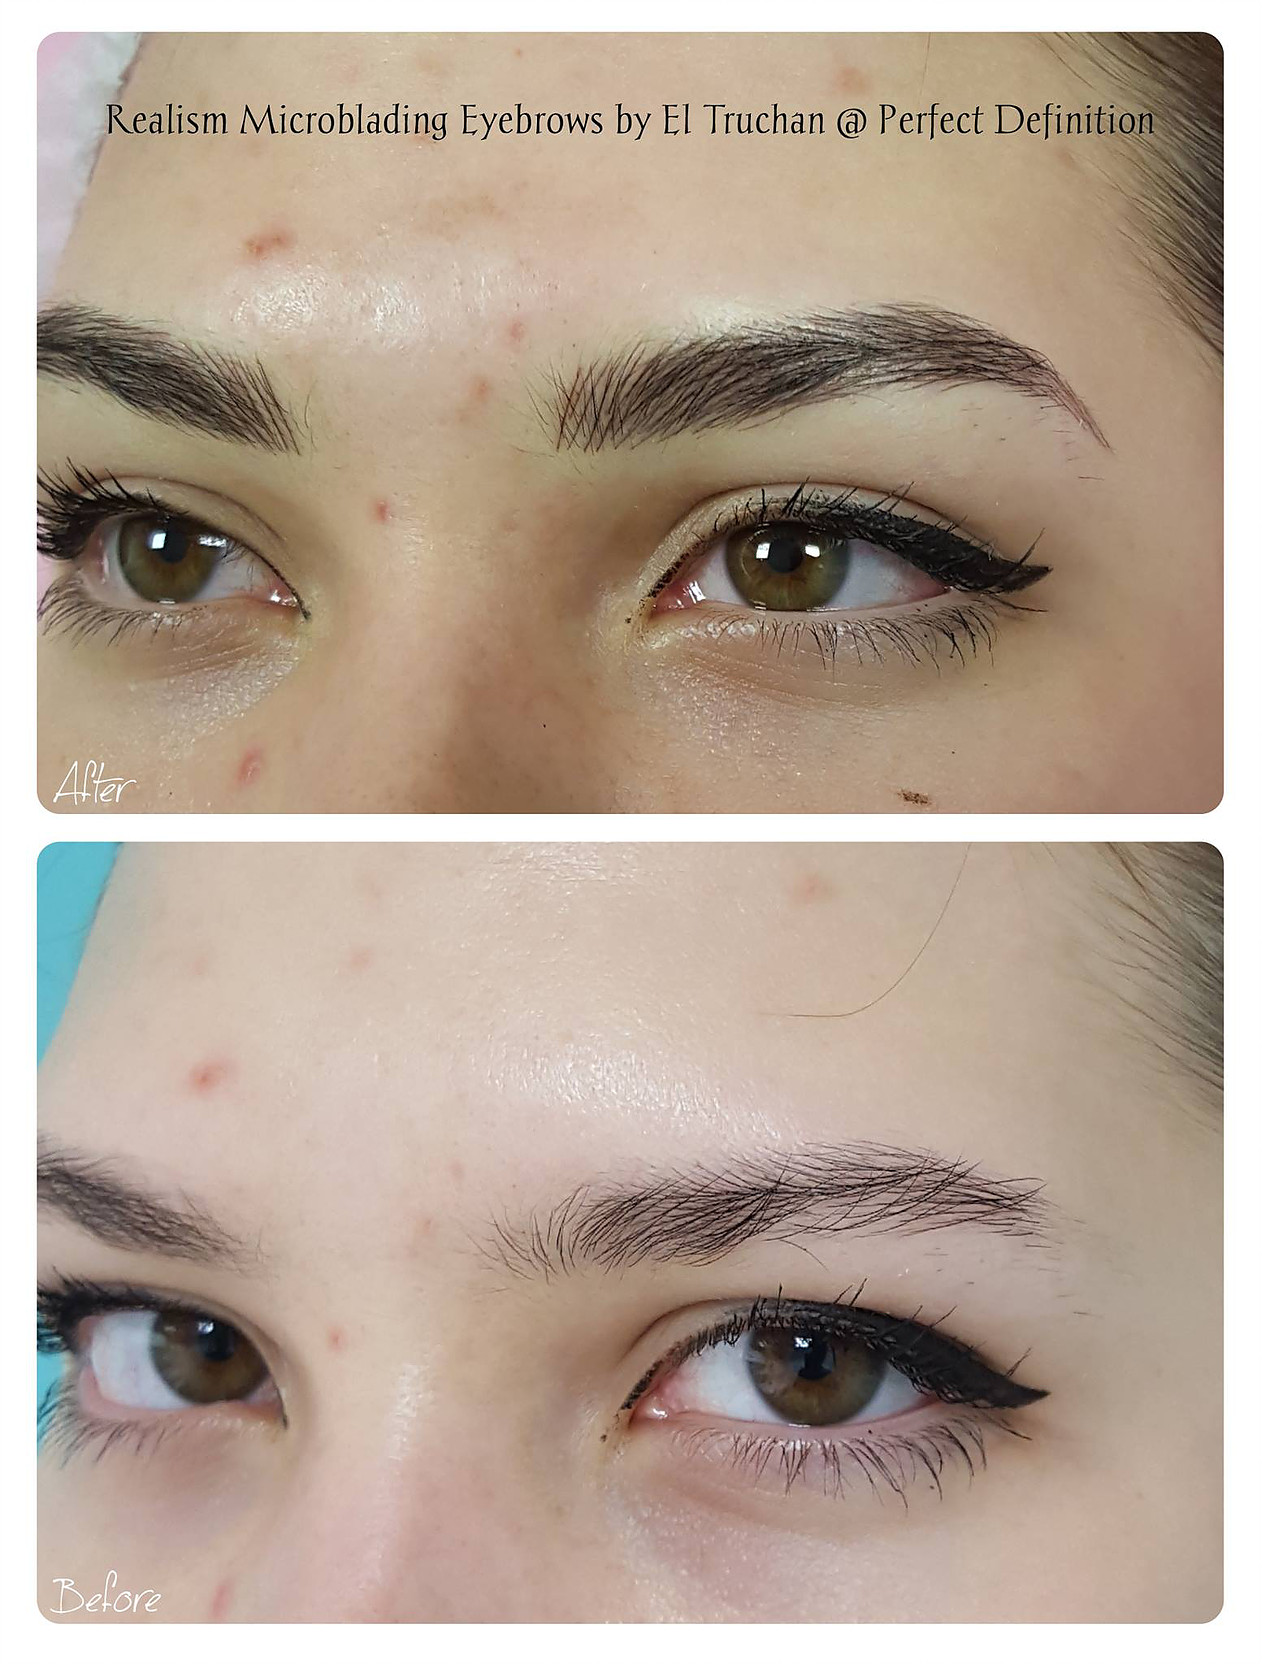 Realism Microblading Eyebrows